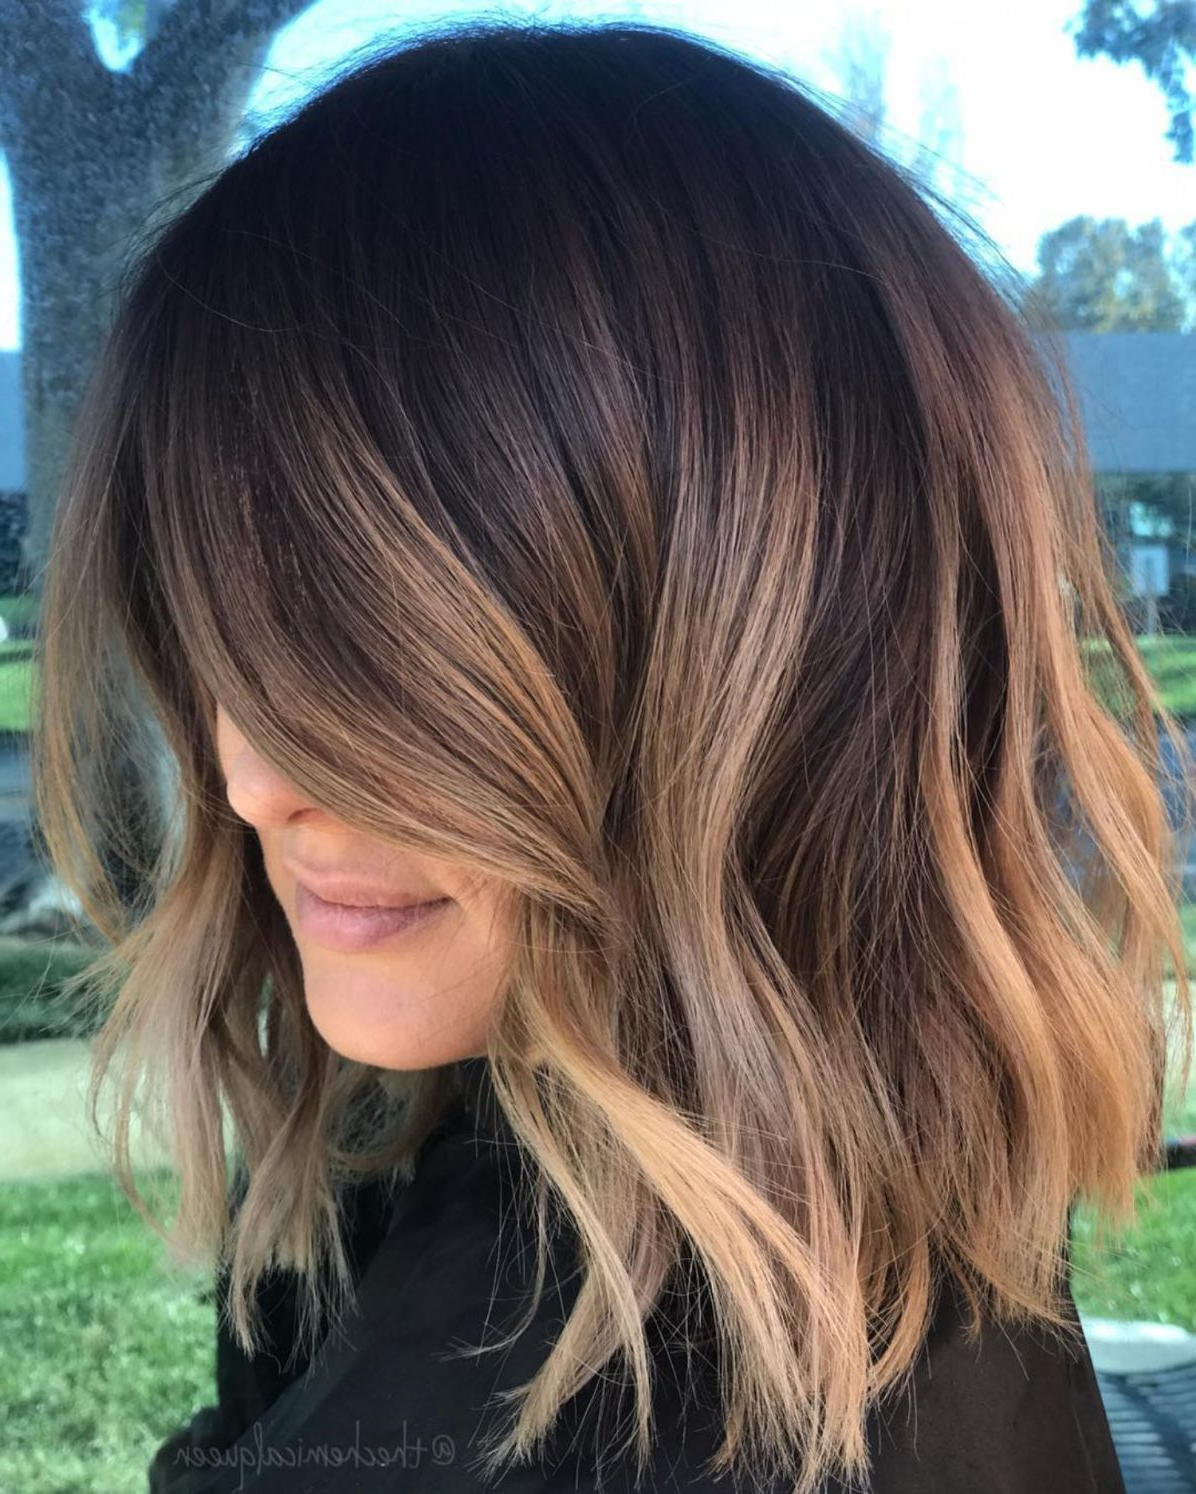 Hair Color : Short Bob Dark Brown Hair With Highlights Inside Short Bob Hairstyles With Highlights (View 13 of 20)